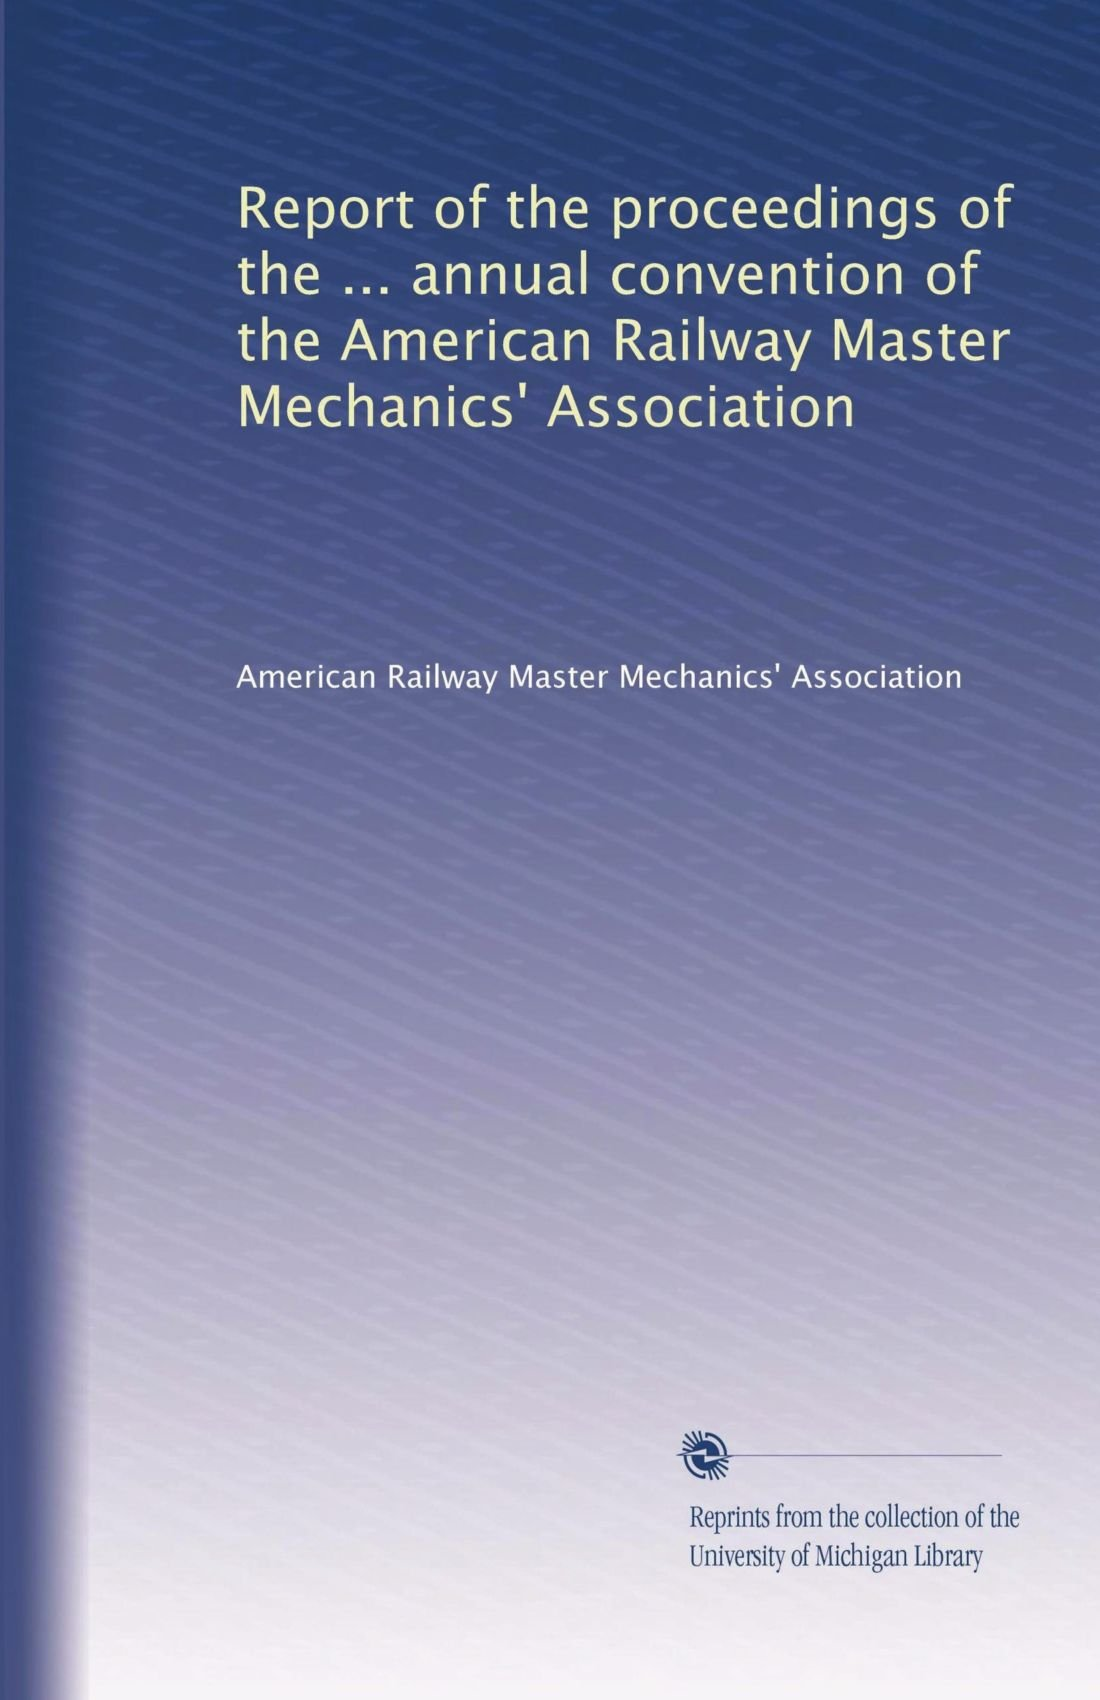 Read Online Report of the proceedings of the ... annual convention of the American Railway Master Mechanics' Association (Volume 7) ebook